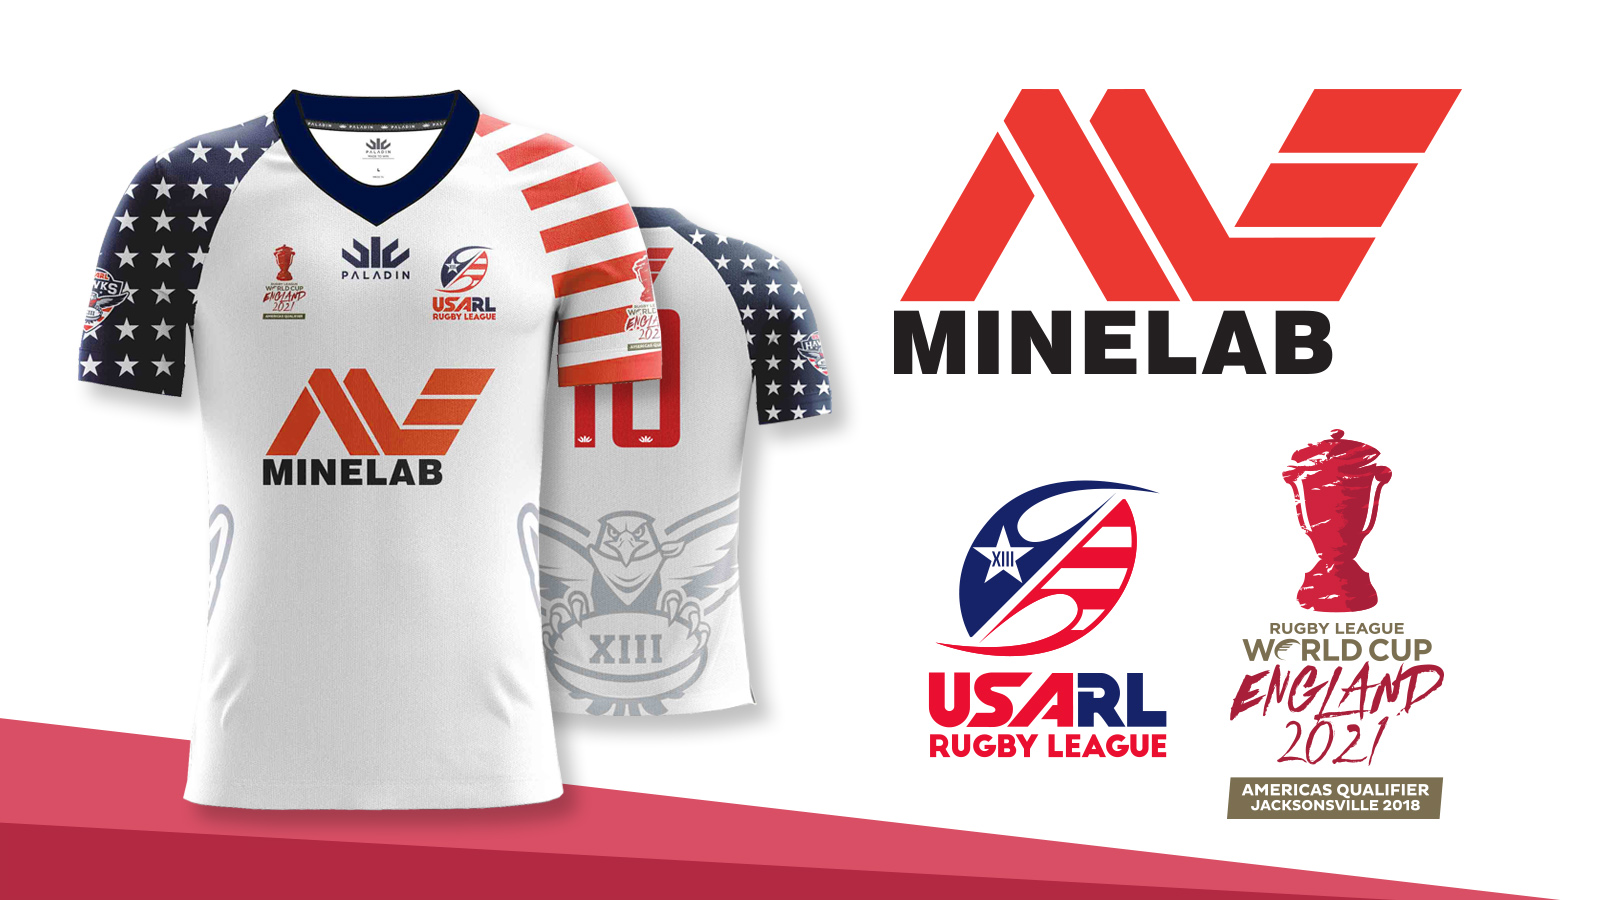 Minelab partners with USA for title sponsorship at Rugby League World Cup Americas Qualifiers